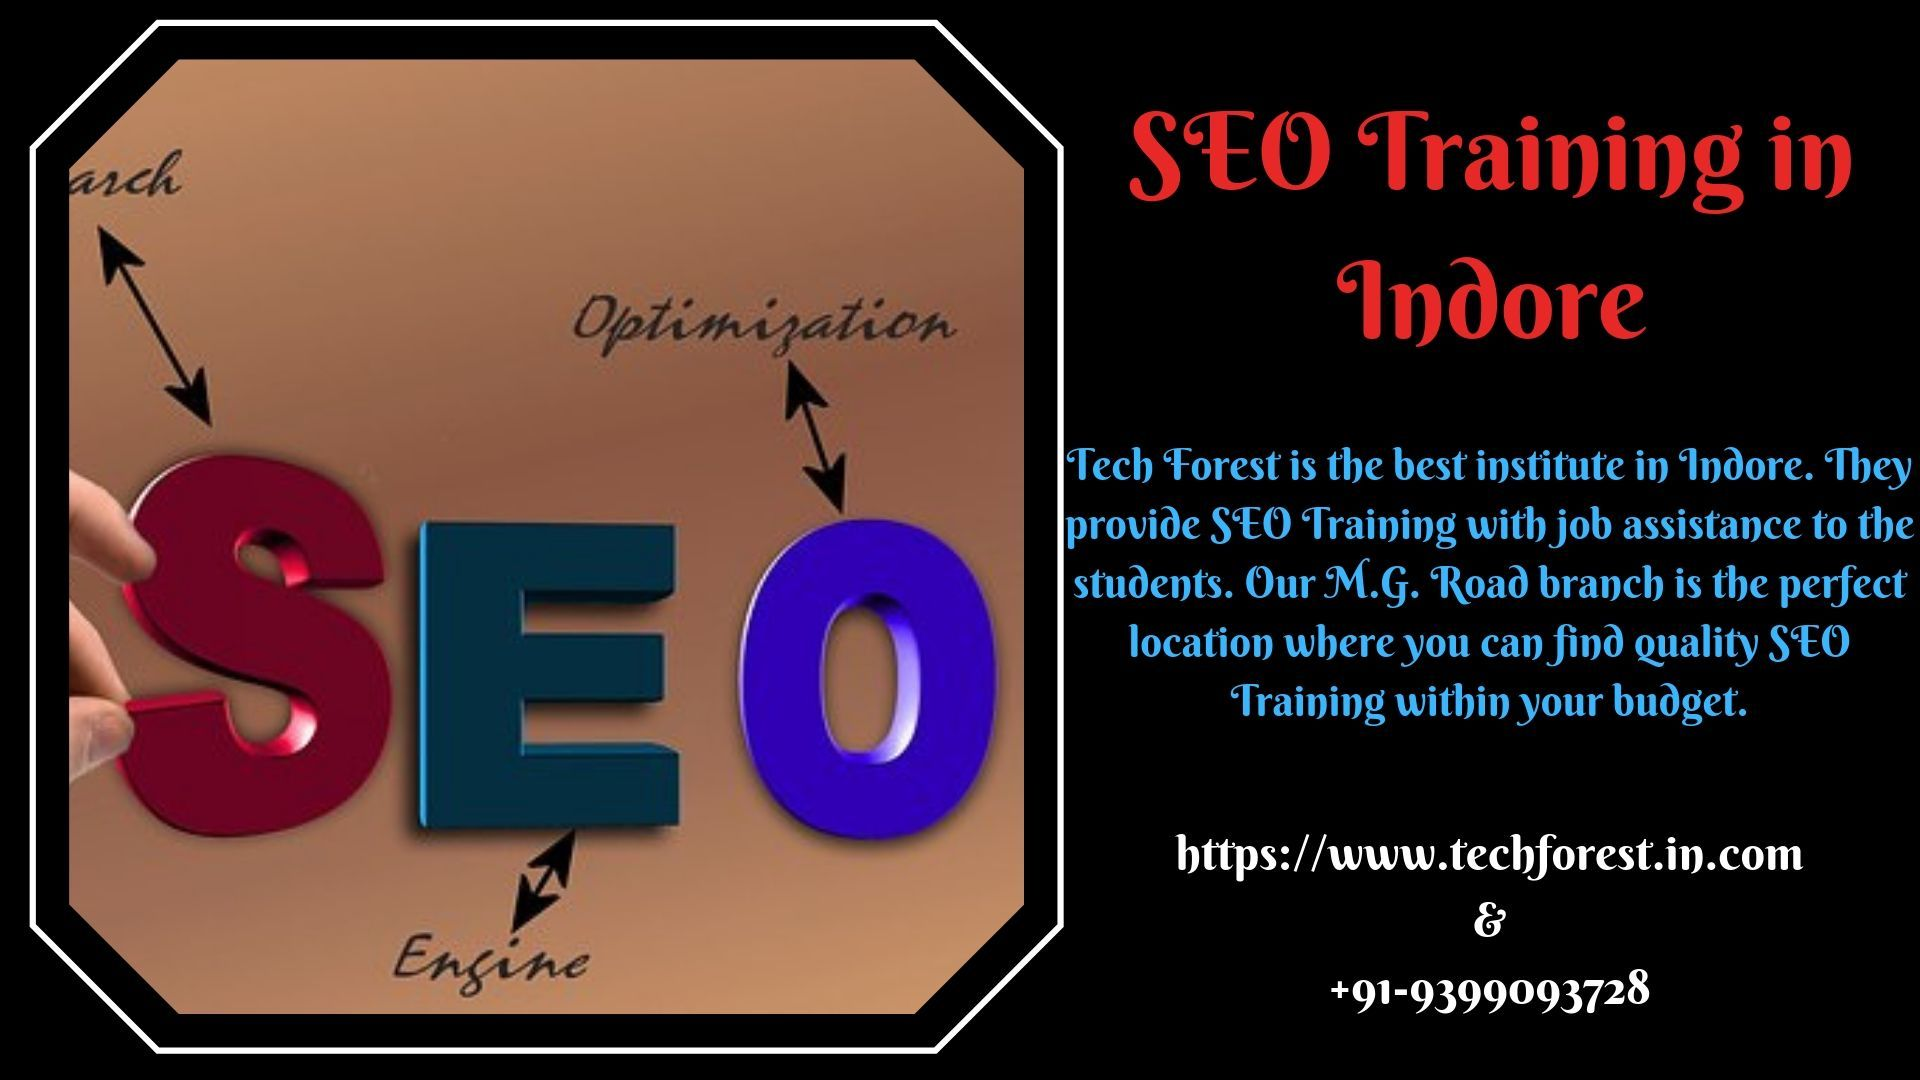 Obtain Seo Training From Tech Forest In Indore Seo Training Learn Seo What Is Seo